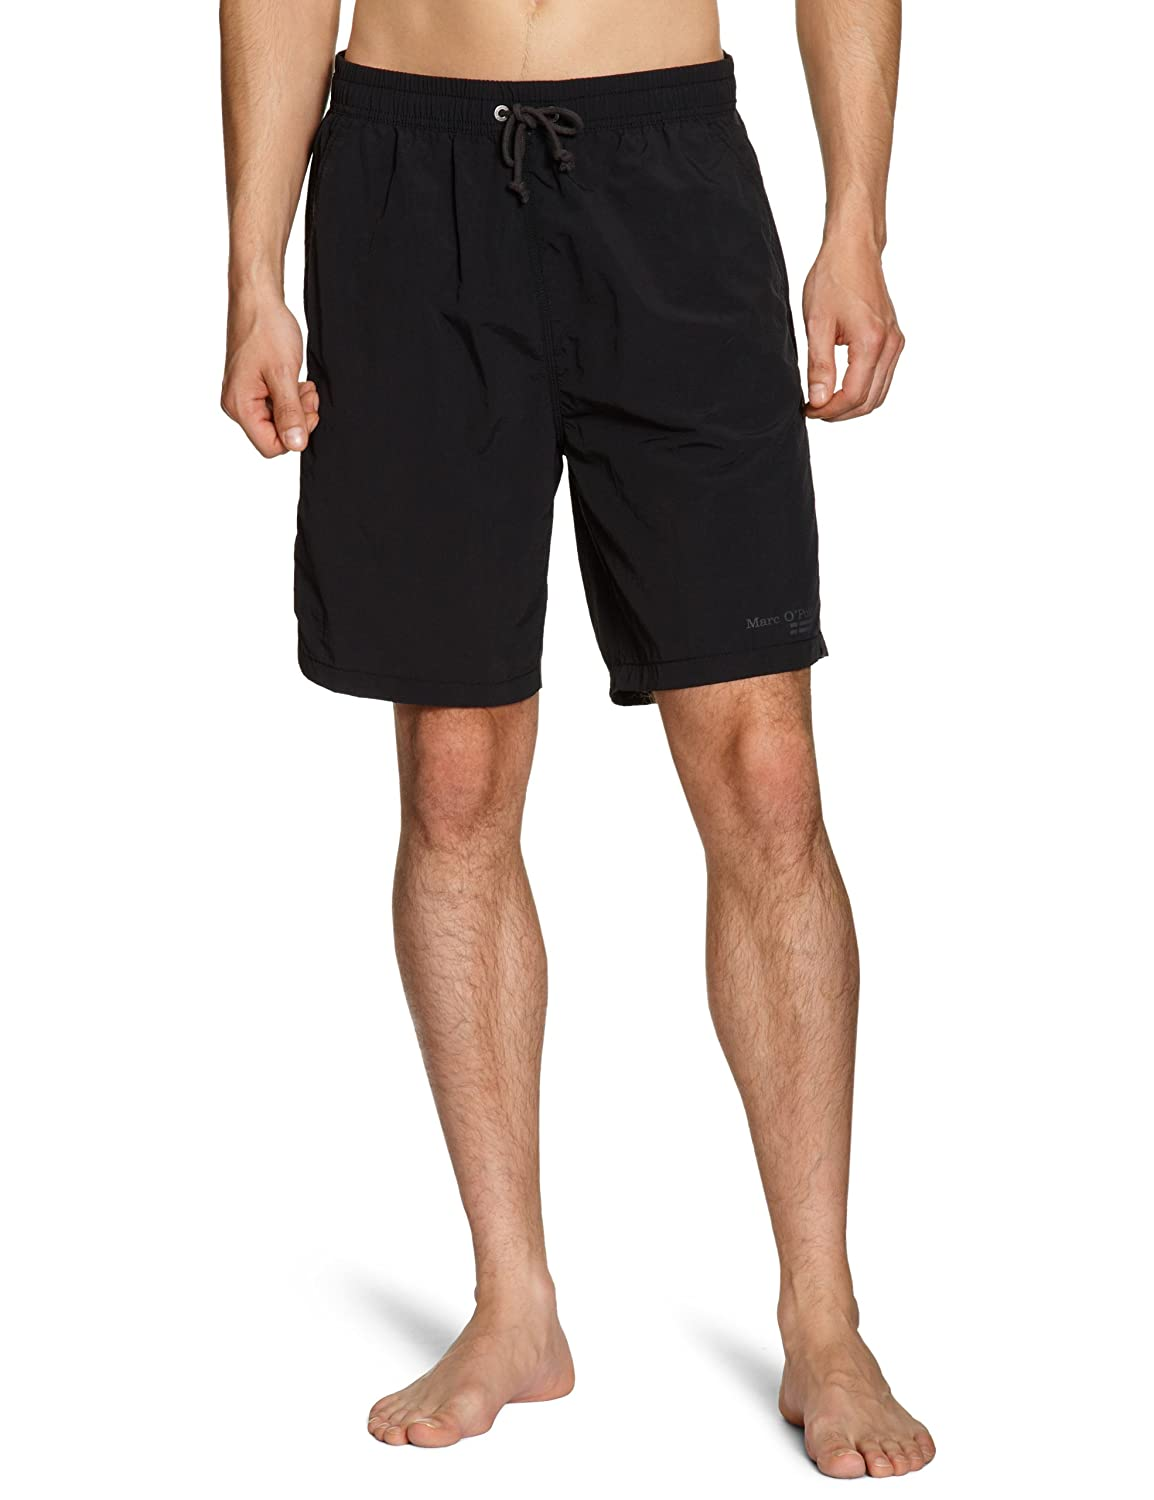 Marc?O'Polo Men's Swimming Shorts 890154